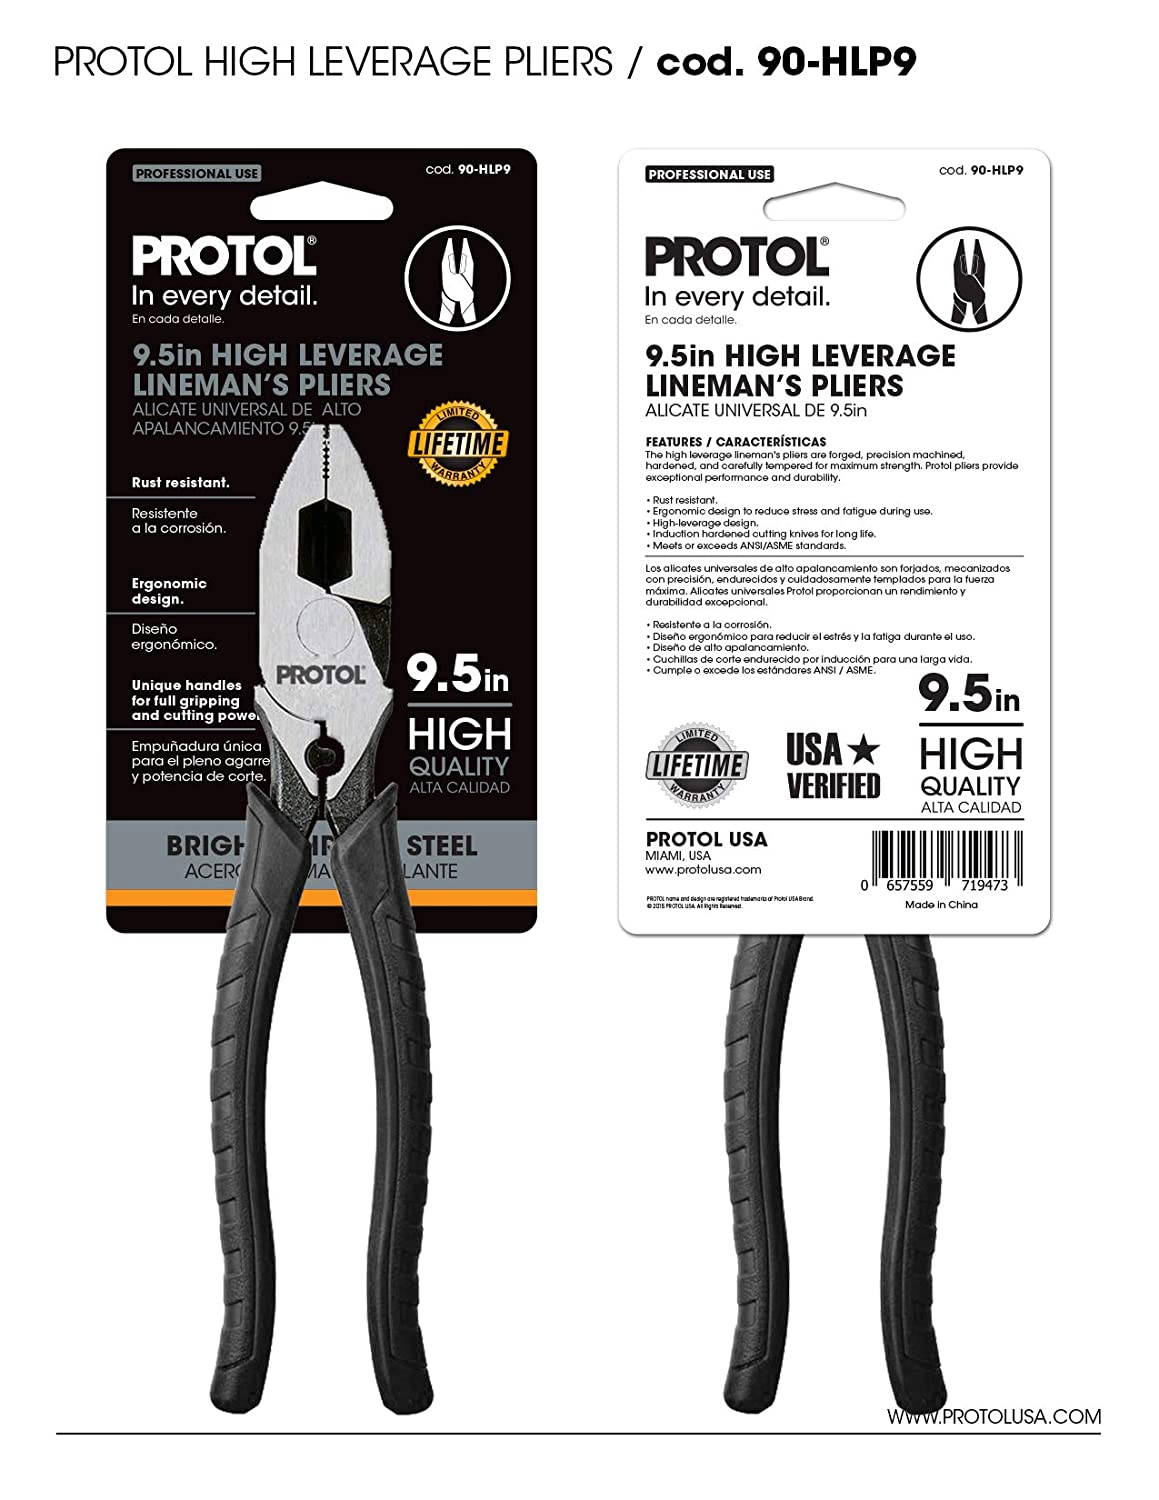 PROTOL 9.5 inches Lineman High Leverage Pliers with side Cutter, Corrosion Resistance Carbon Steel Slip Joint Pliers (90-HLP9) - - Amazon.com